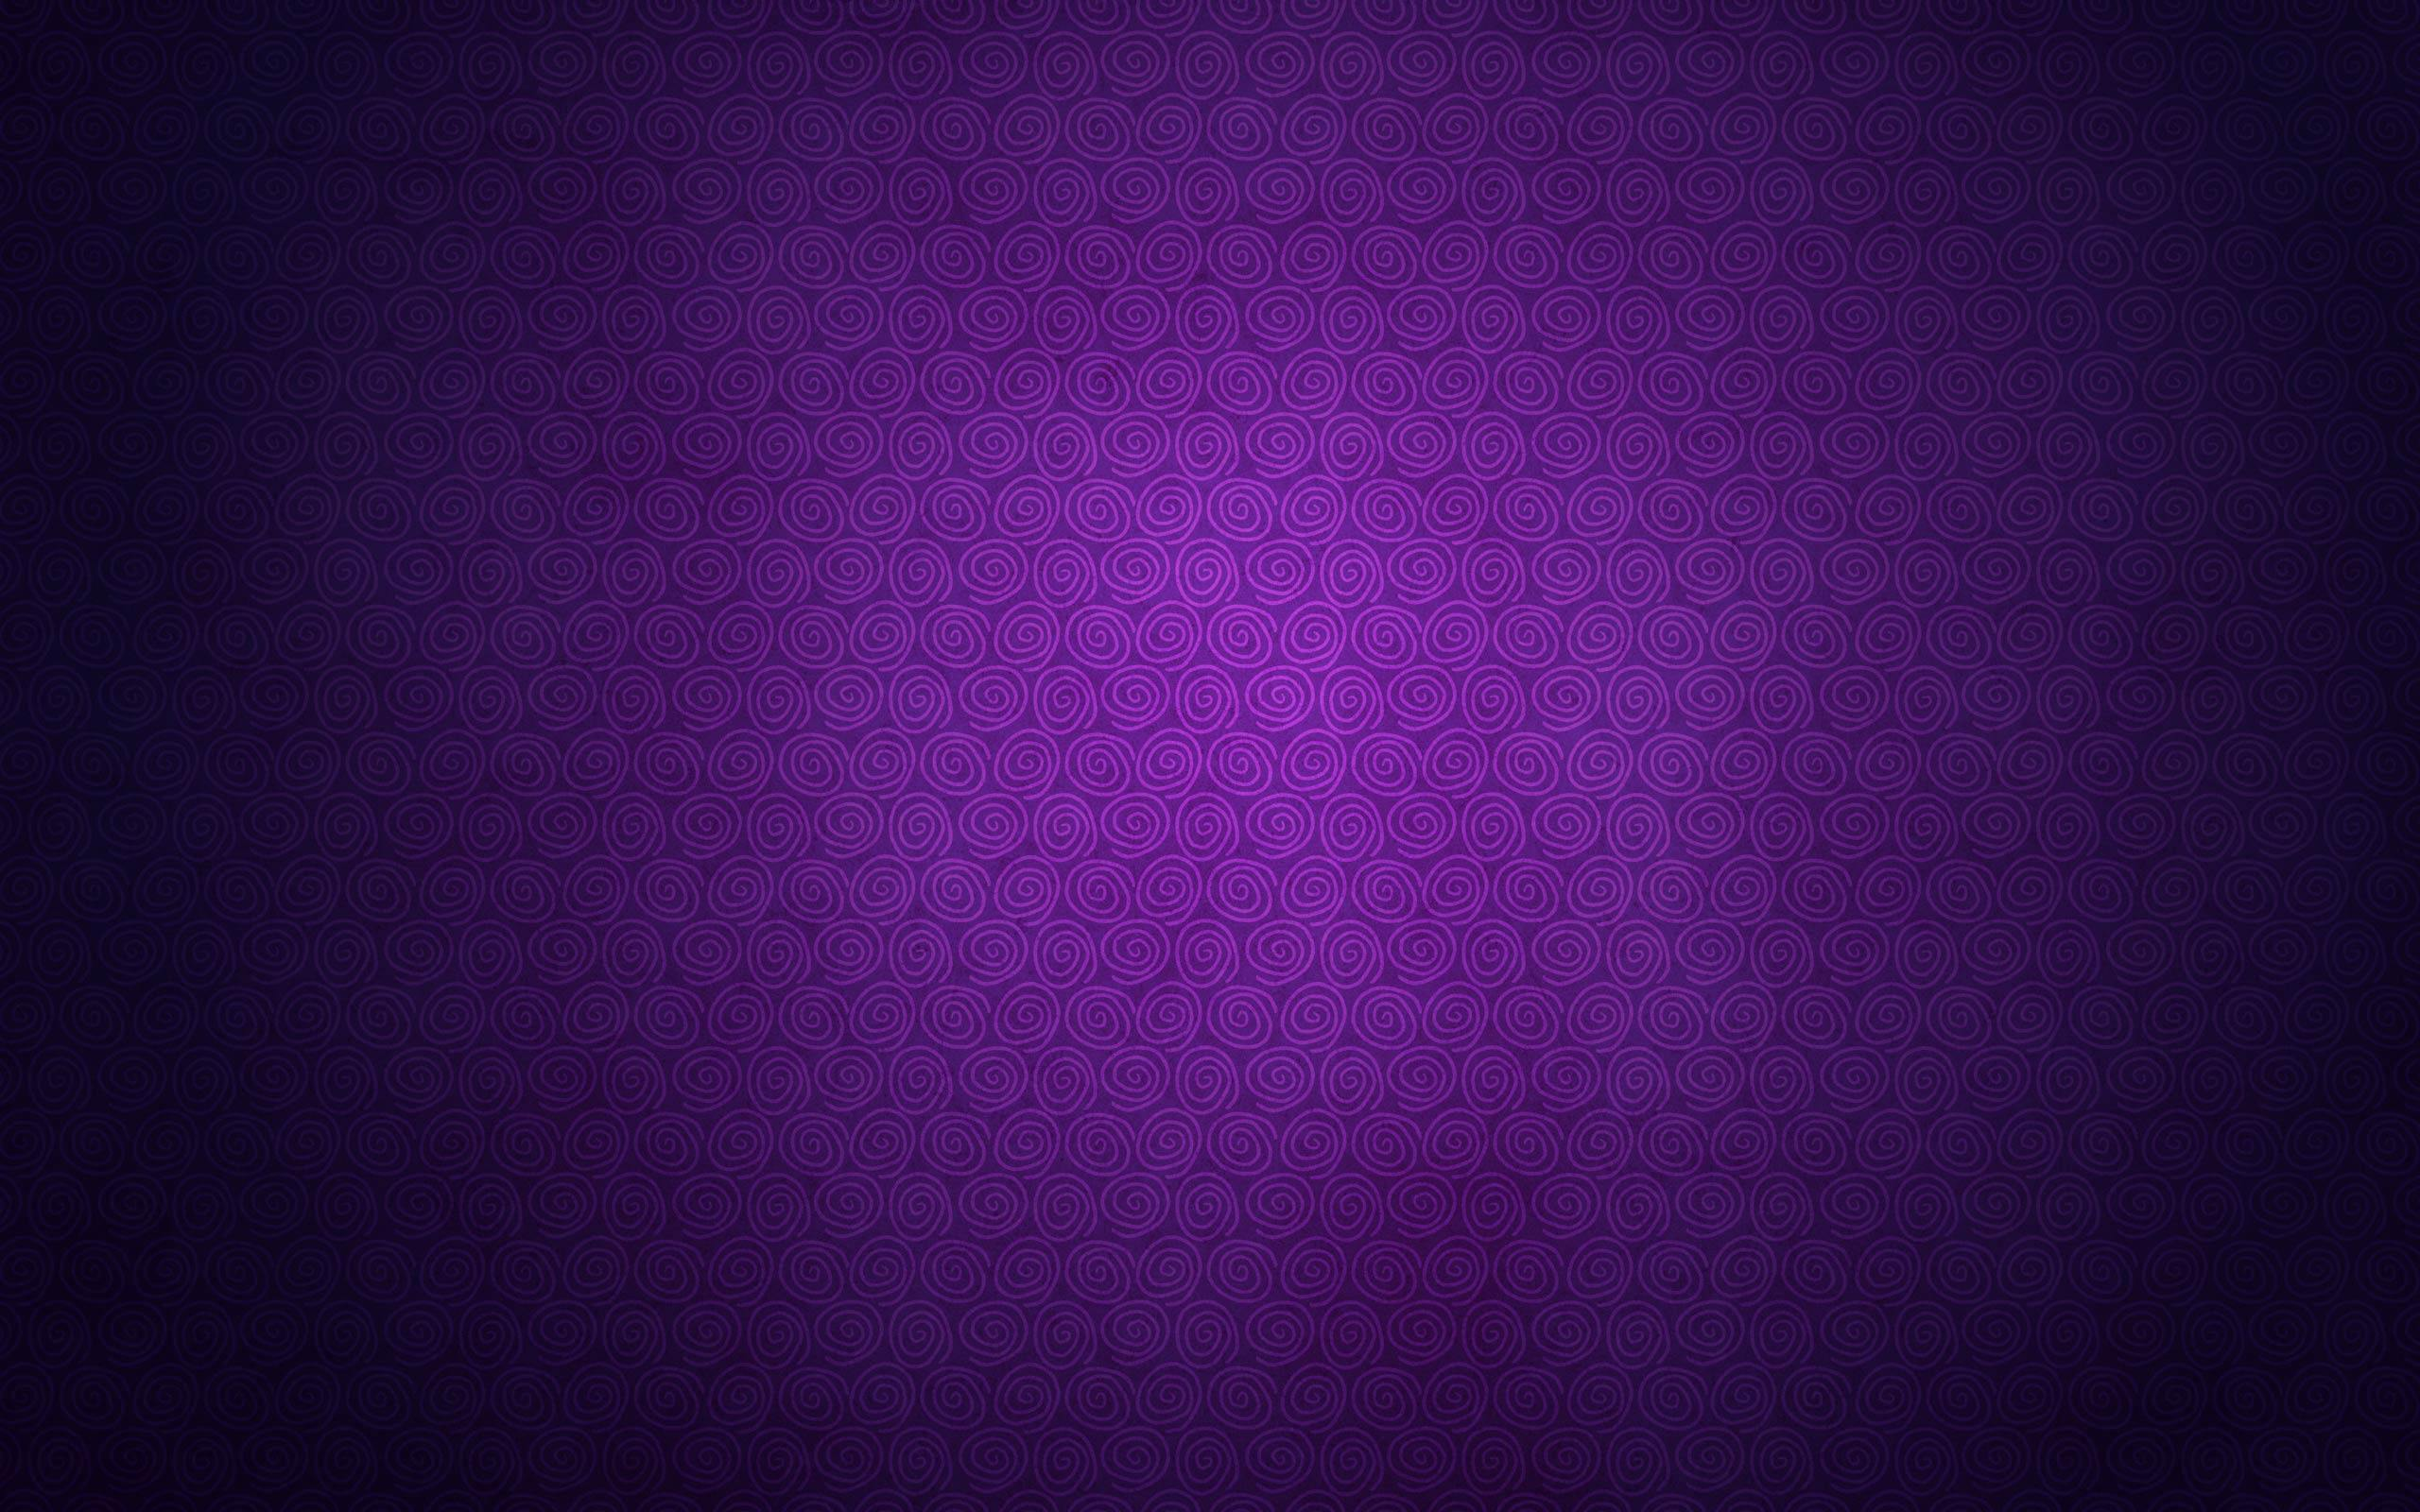 Purple Backgrounds Wallpapers 2560x1600